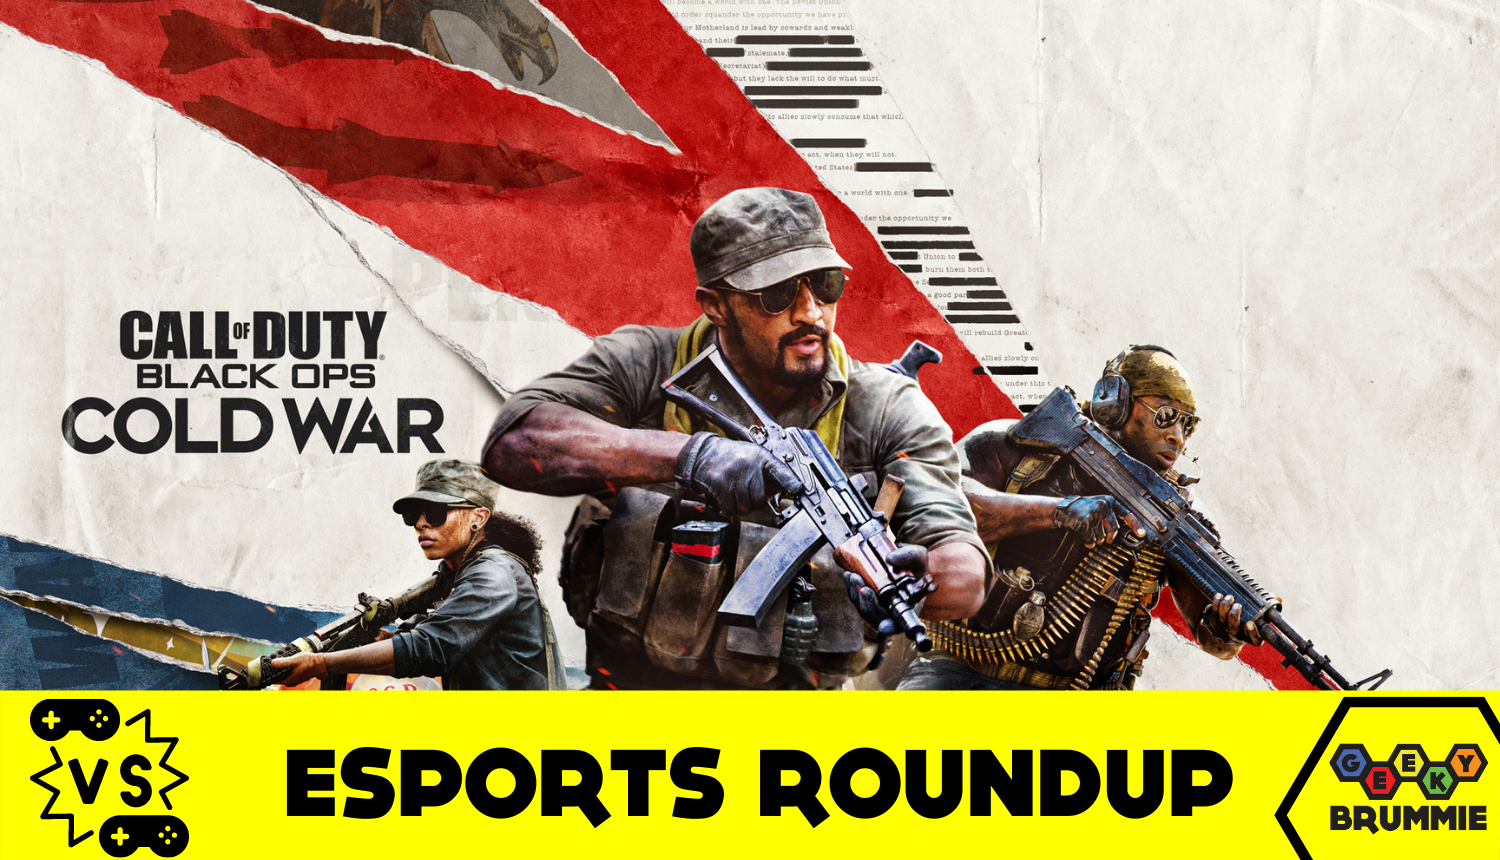 Esports Roundup – Women in Games Awards & the British Army's Mustang Cup